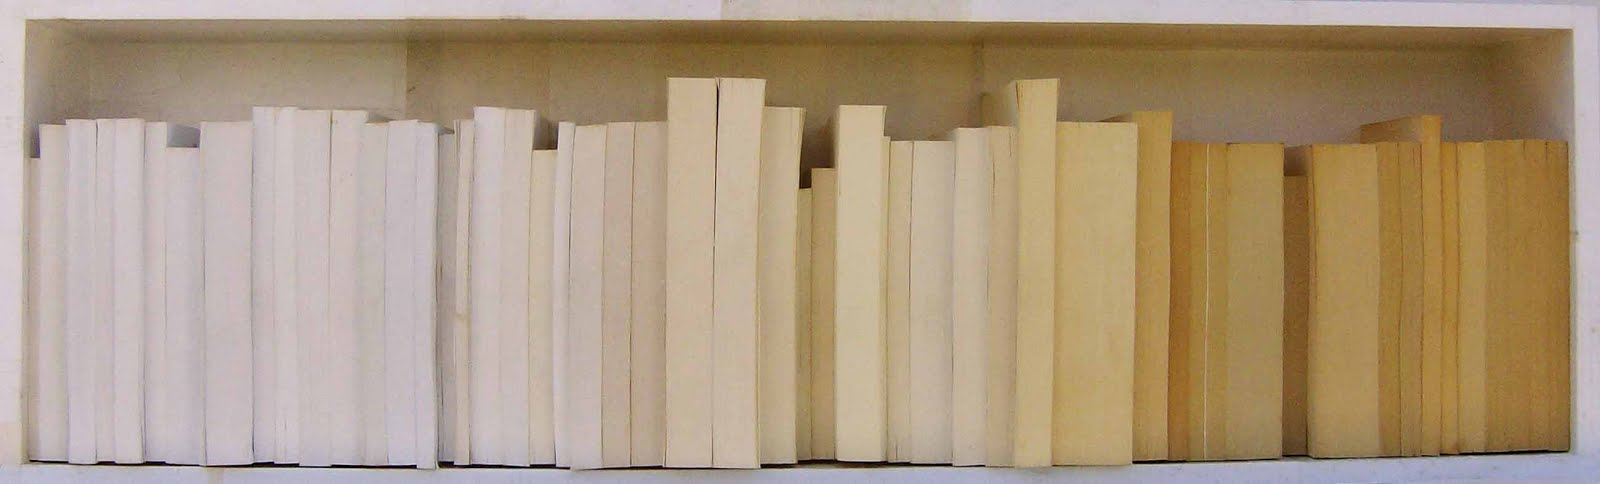 embryo very young (53 books - 30x100cm) PVP1600€